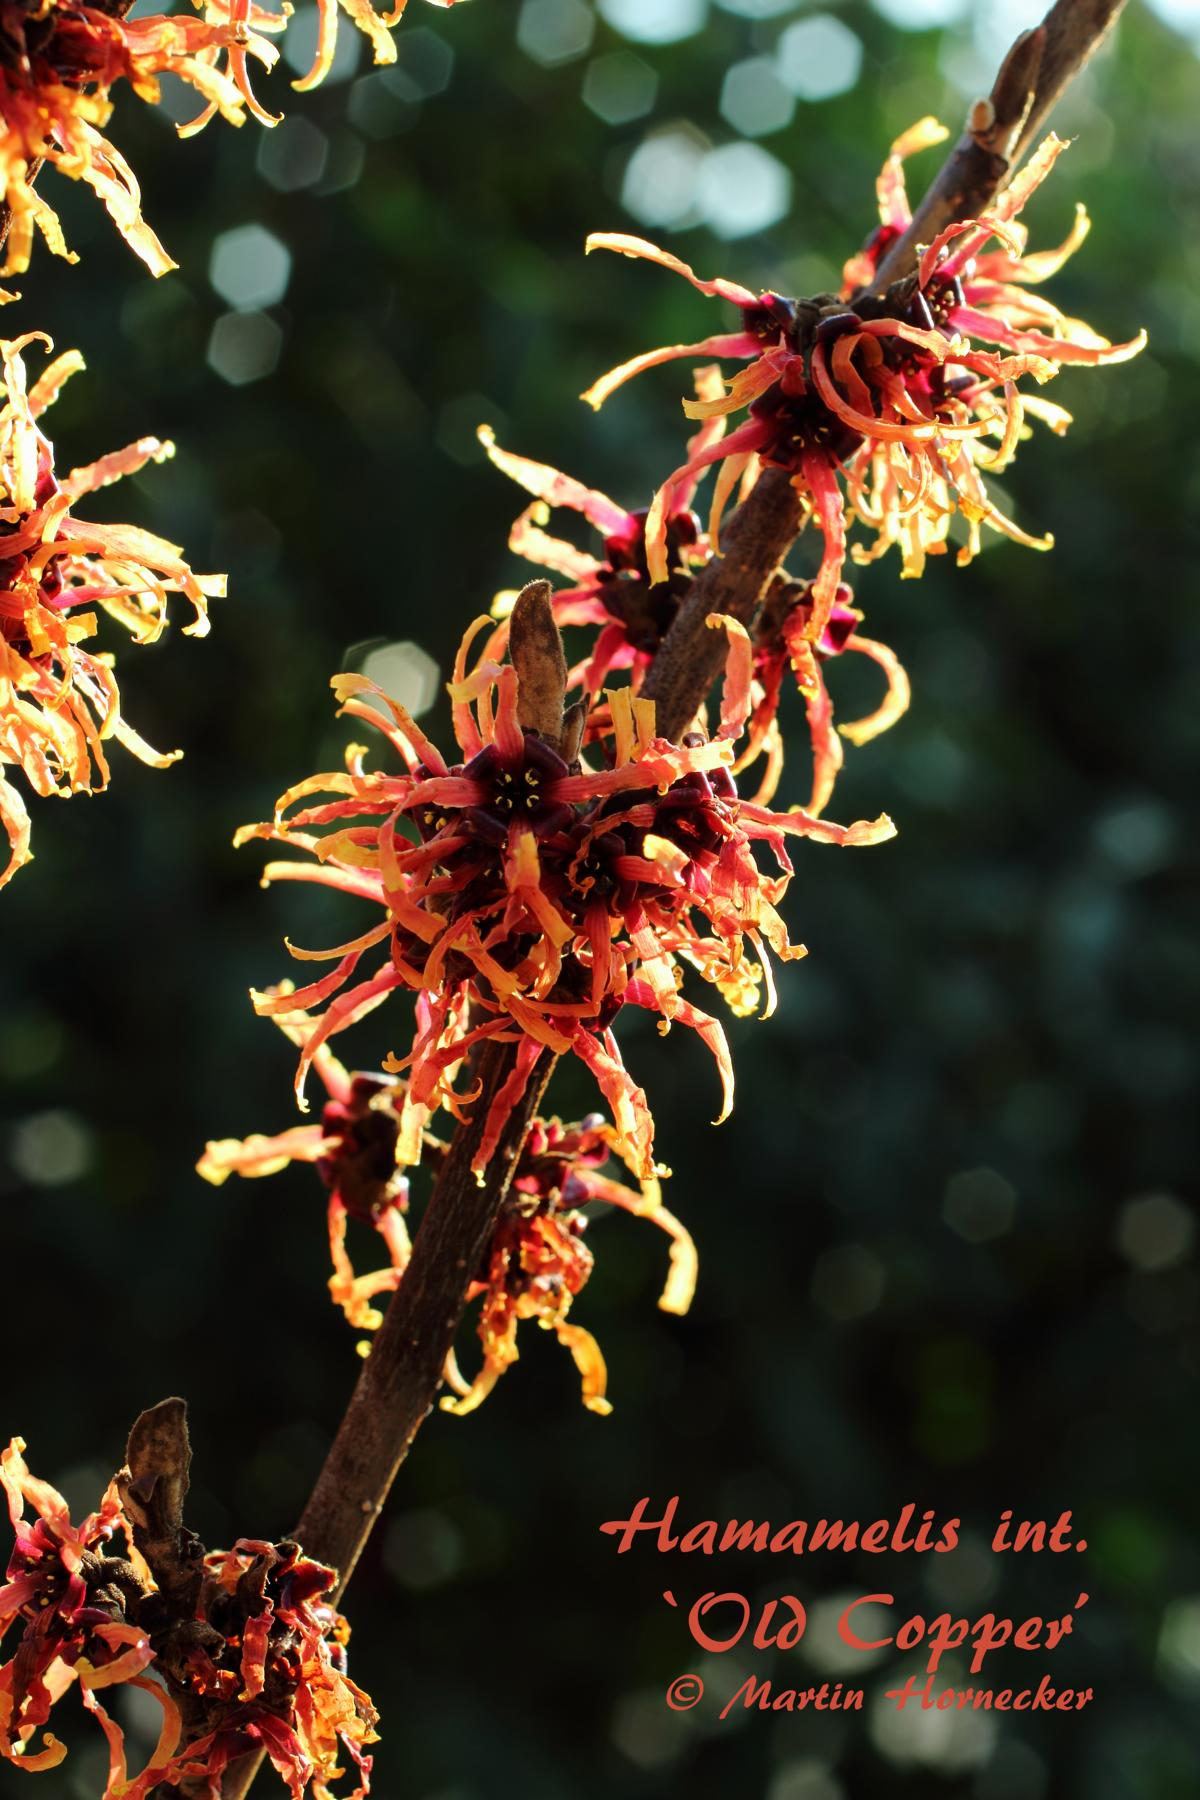 Hamamelis Old Copper